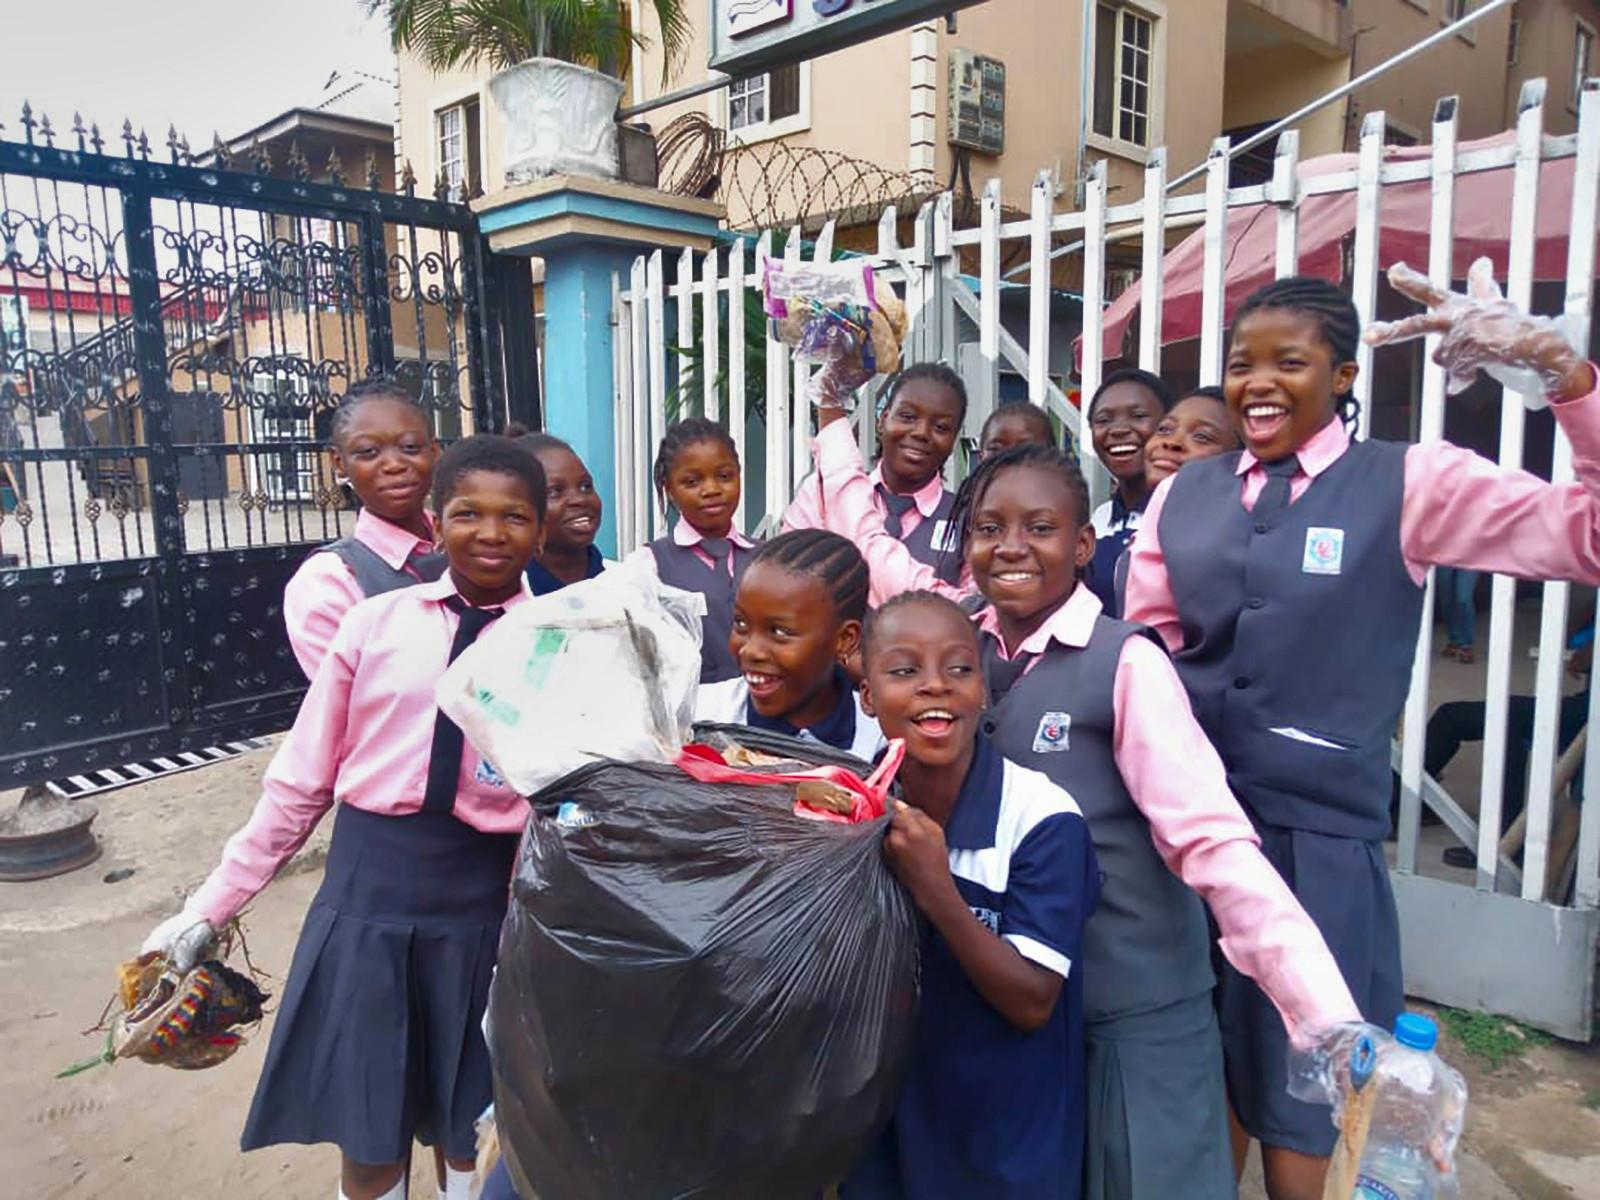 A group of girls smiling, looking into the camera, while holding a big plastic bag of litter